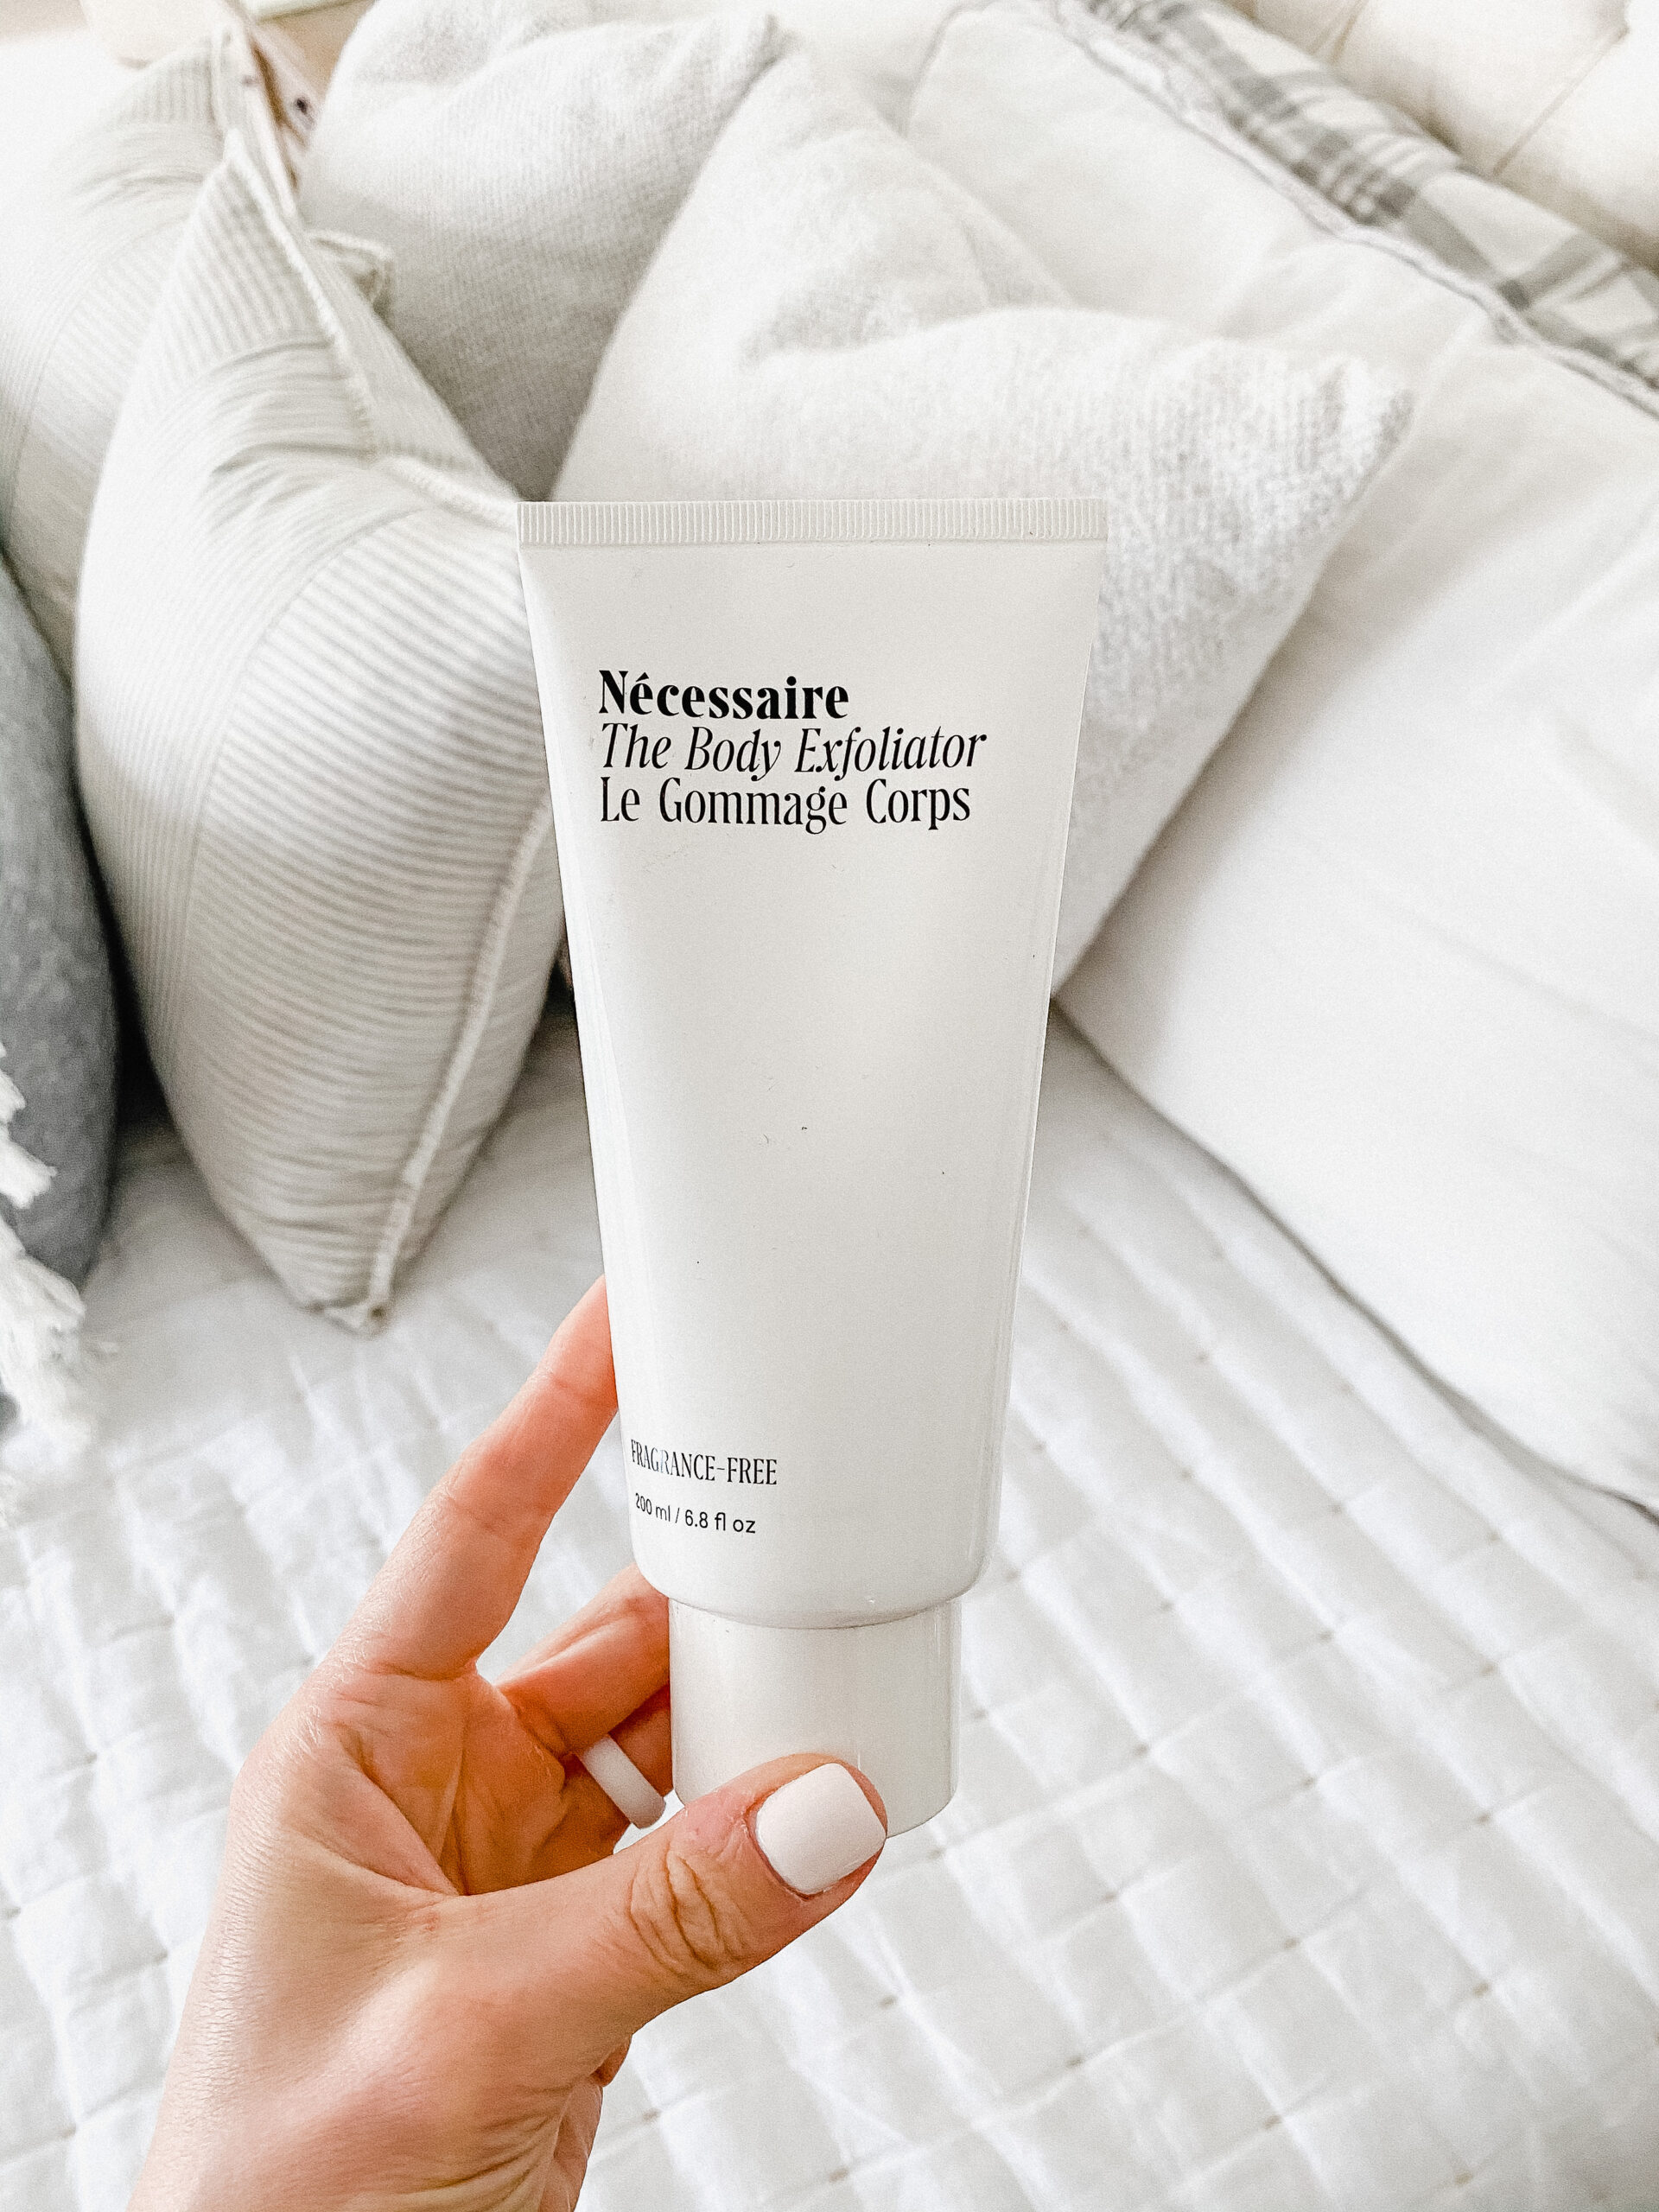 Connecticut life and style blogger Lauren McBride shares her current favorite body products including body lotion, self tanner, and more.